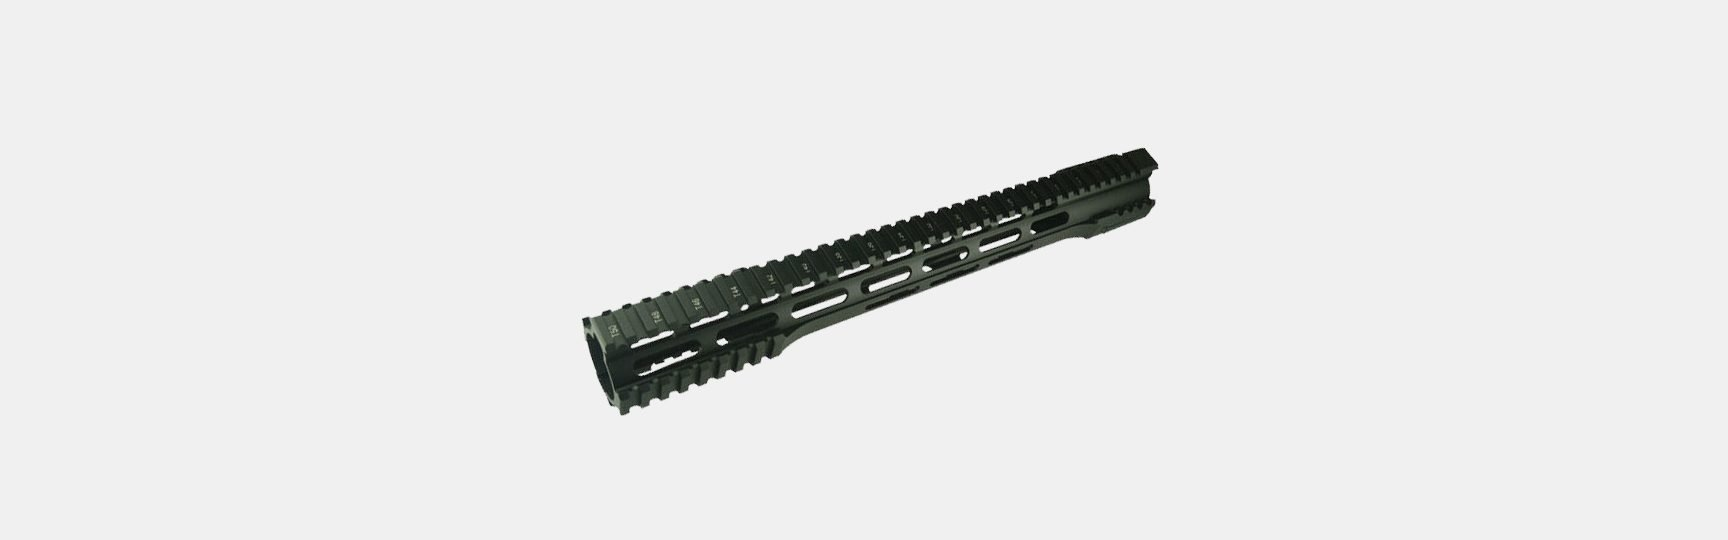 AR 15 Handguard: Free floating or drop-in? Aluminum or Polymer? Quad rail, Keymod, M-LOK, or no rail?